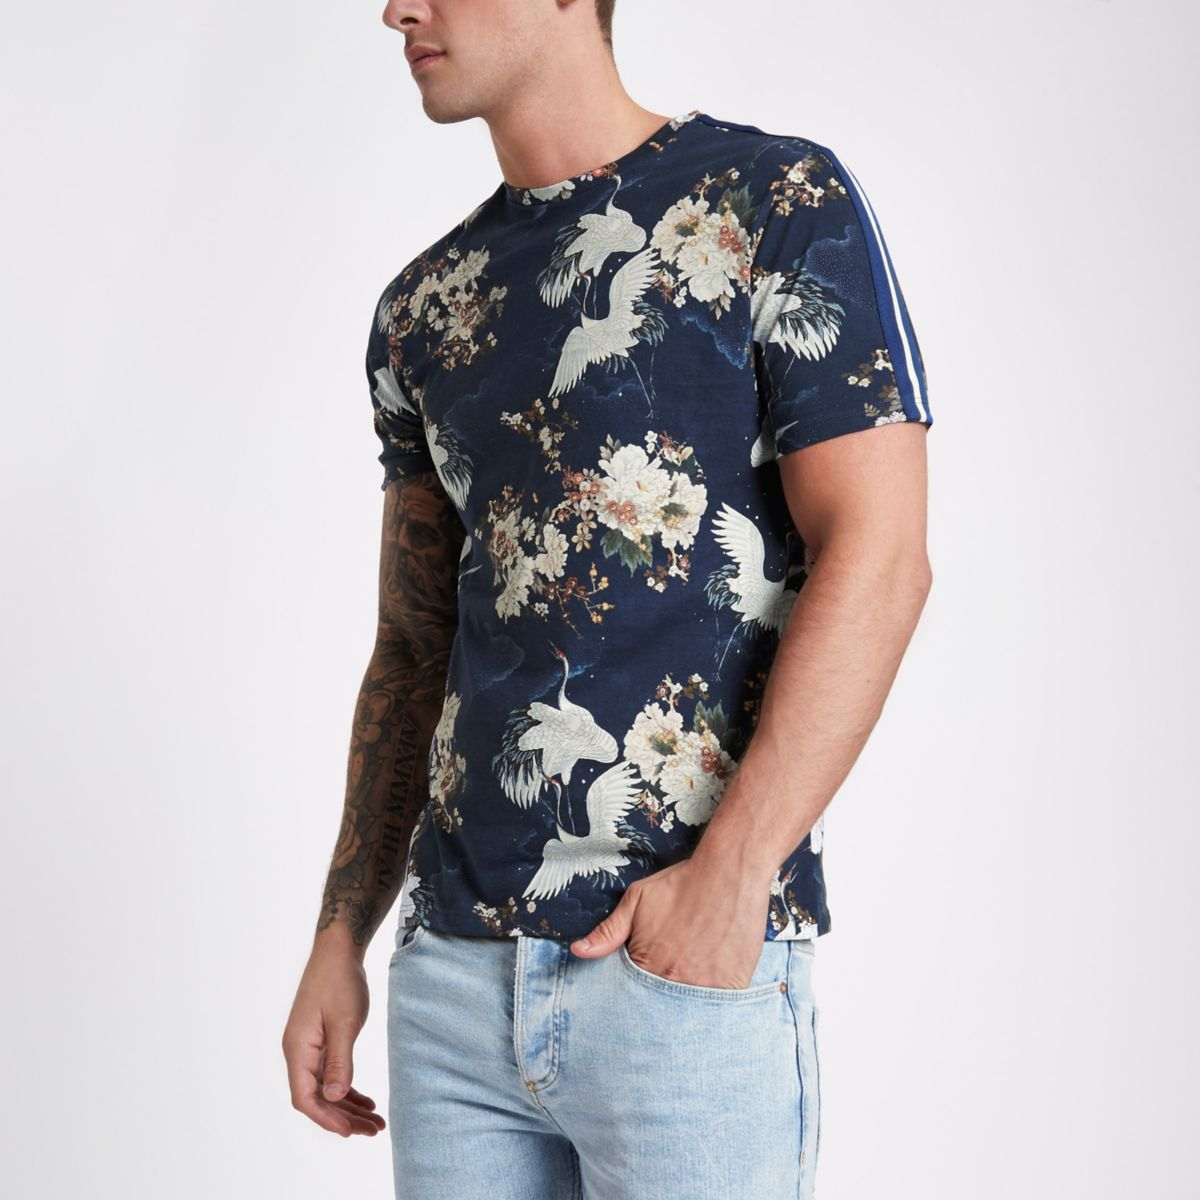 Blaues Slim Fit T-Shirt mit Vogelprint